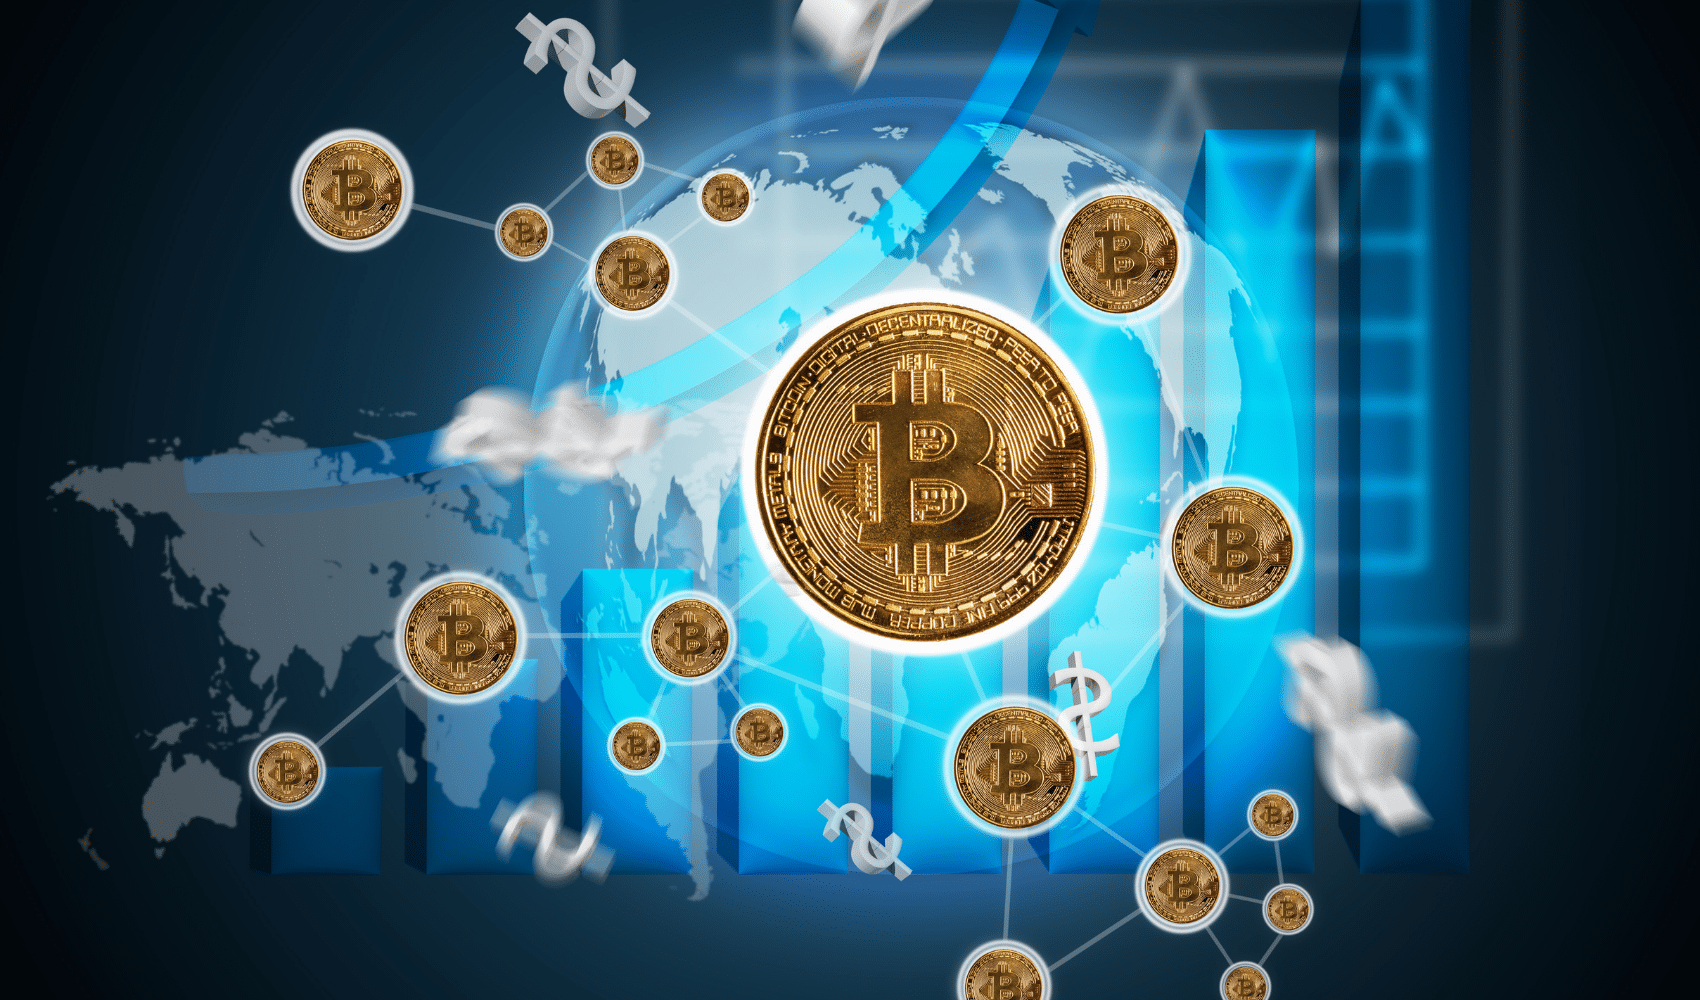 5 Cryptocurrency Trends For 2019 That You Need To Know